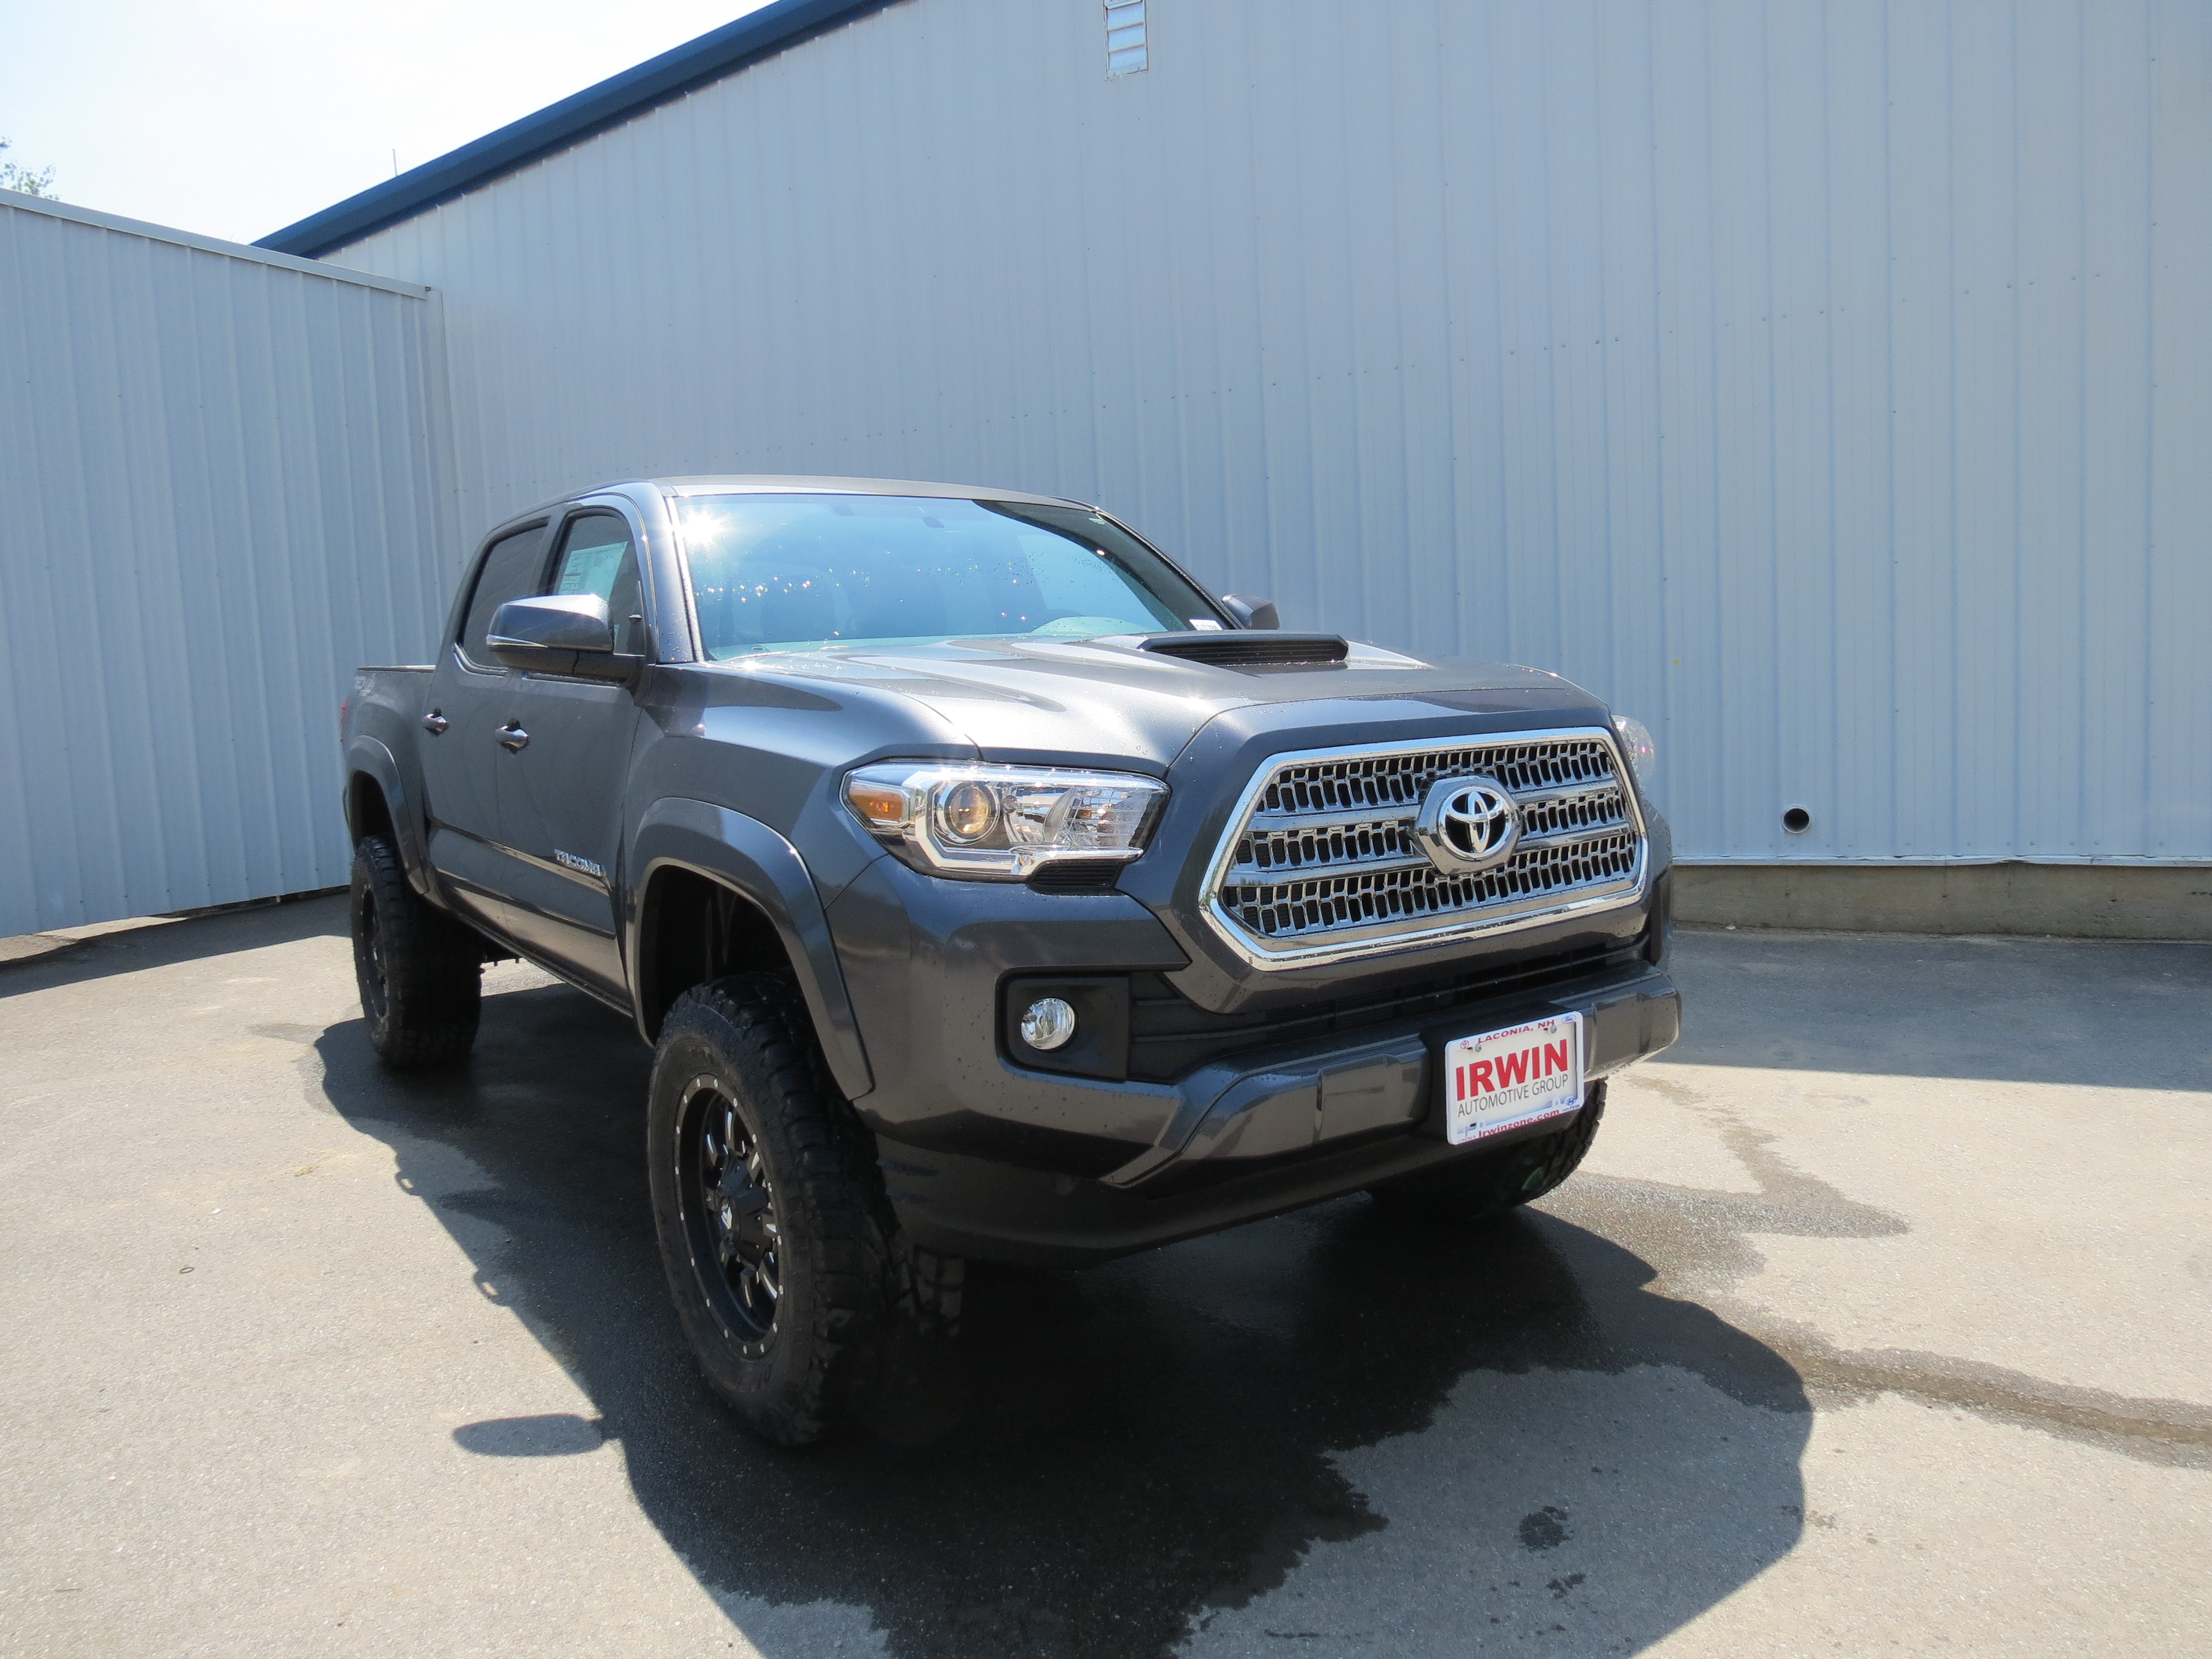 2016 Toyota Tacoma Trd Sport With A Lift Kit Irwin